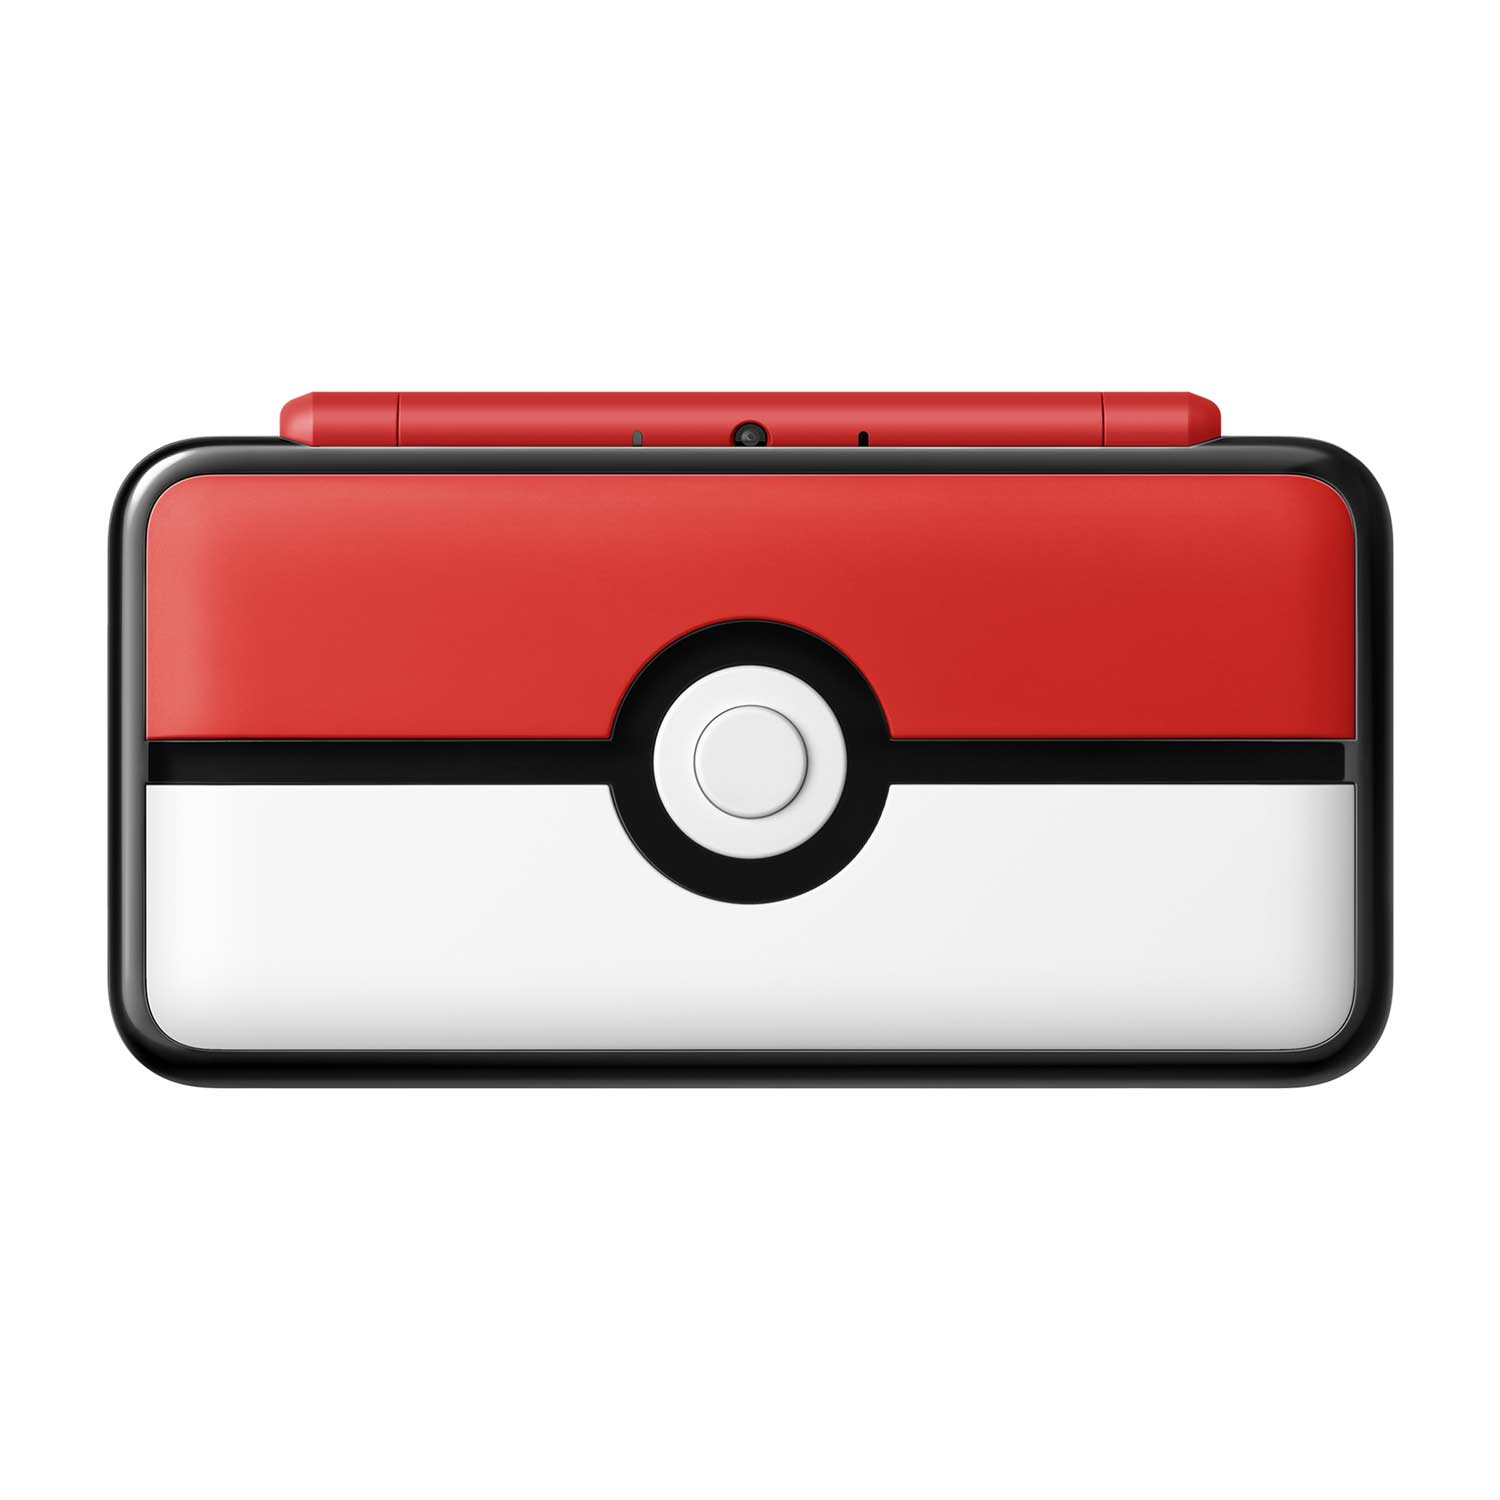 Pokeball clipart standard. New nintendo ds xl